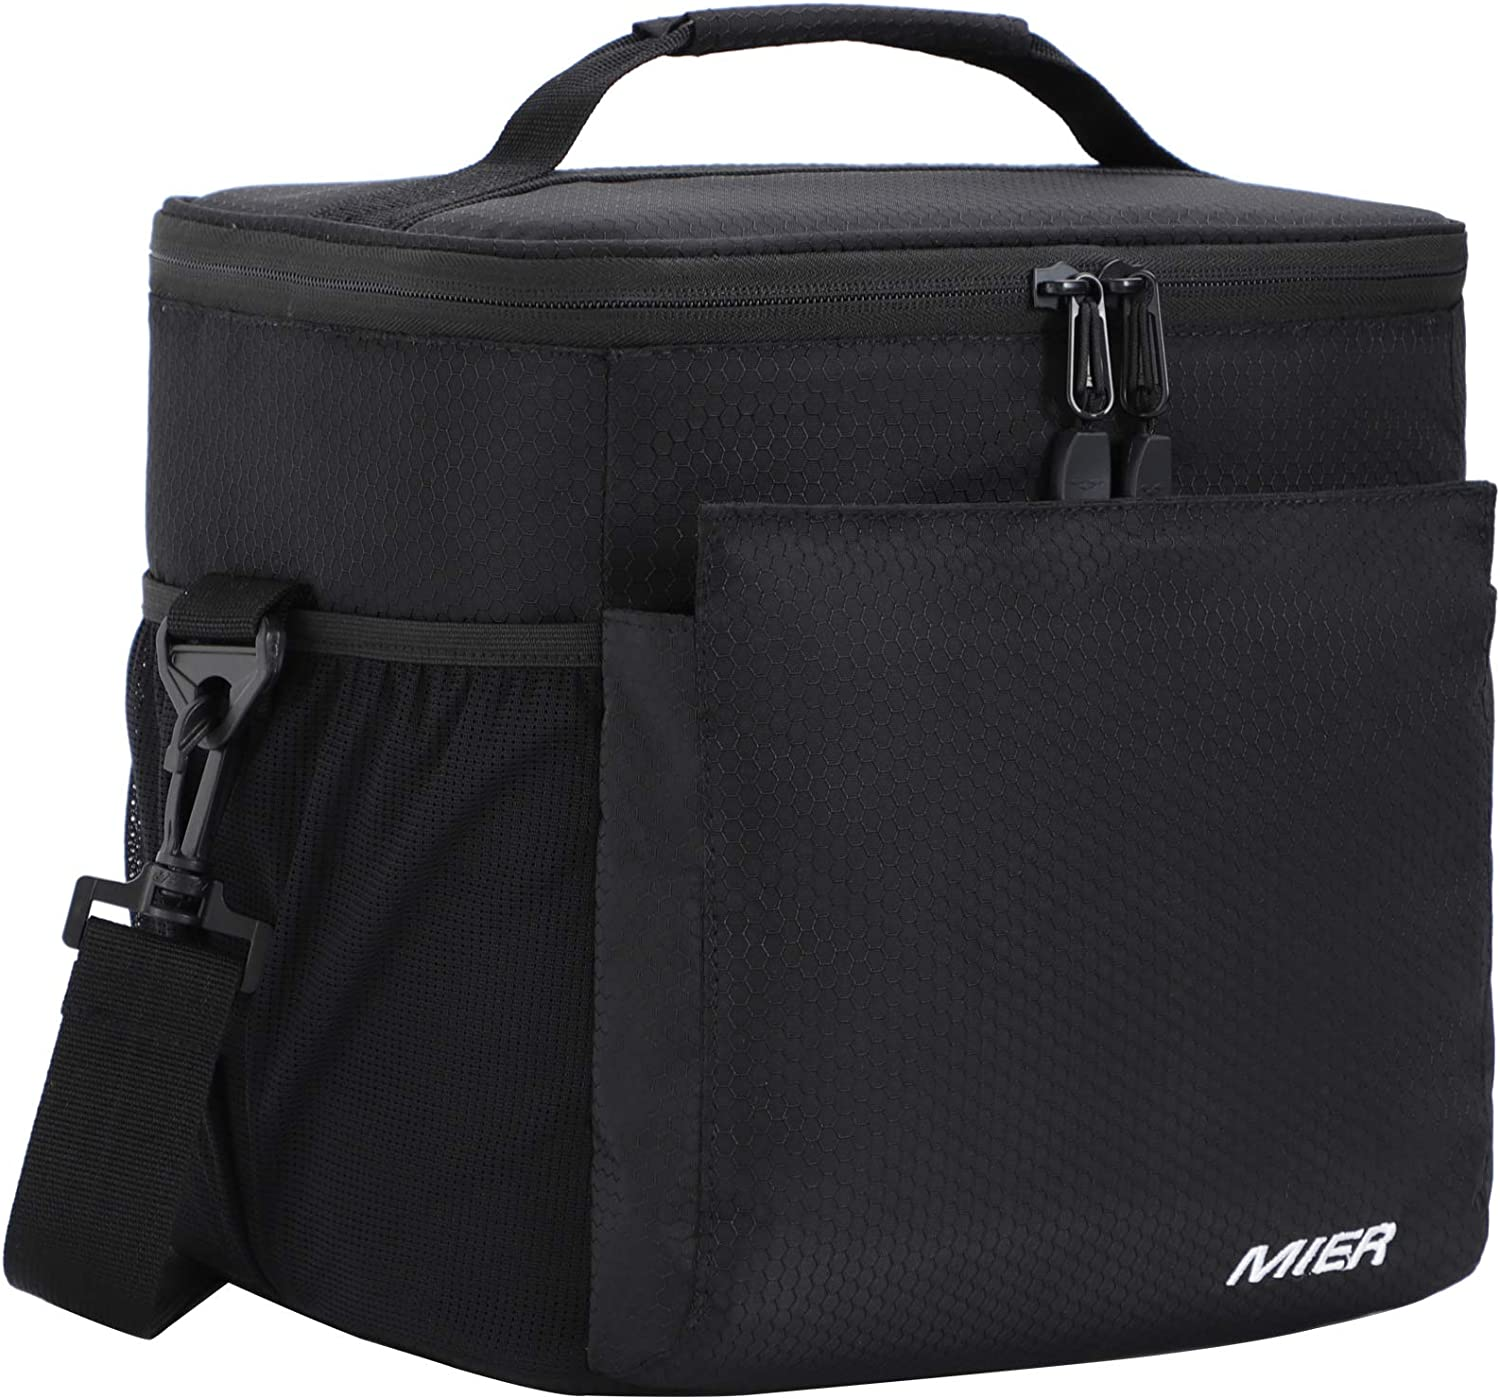 MIER Insulated Lunch Bag Men and Women Soft Cooler Lunch Box Tote with Shoulder Strap, Leakproof Liner, 24 Can, Pure Black